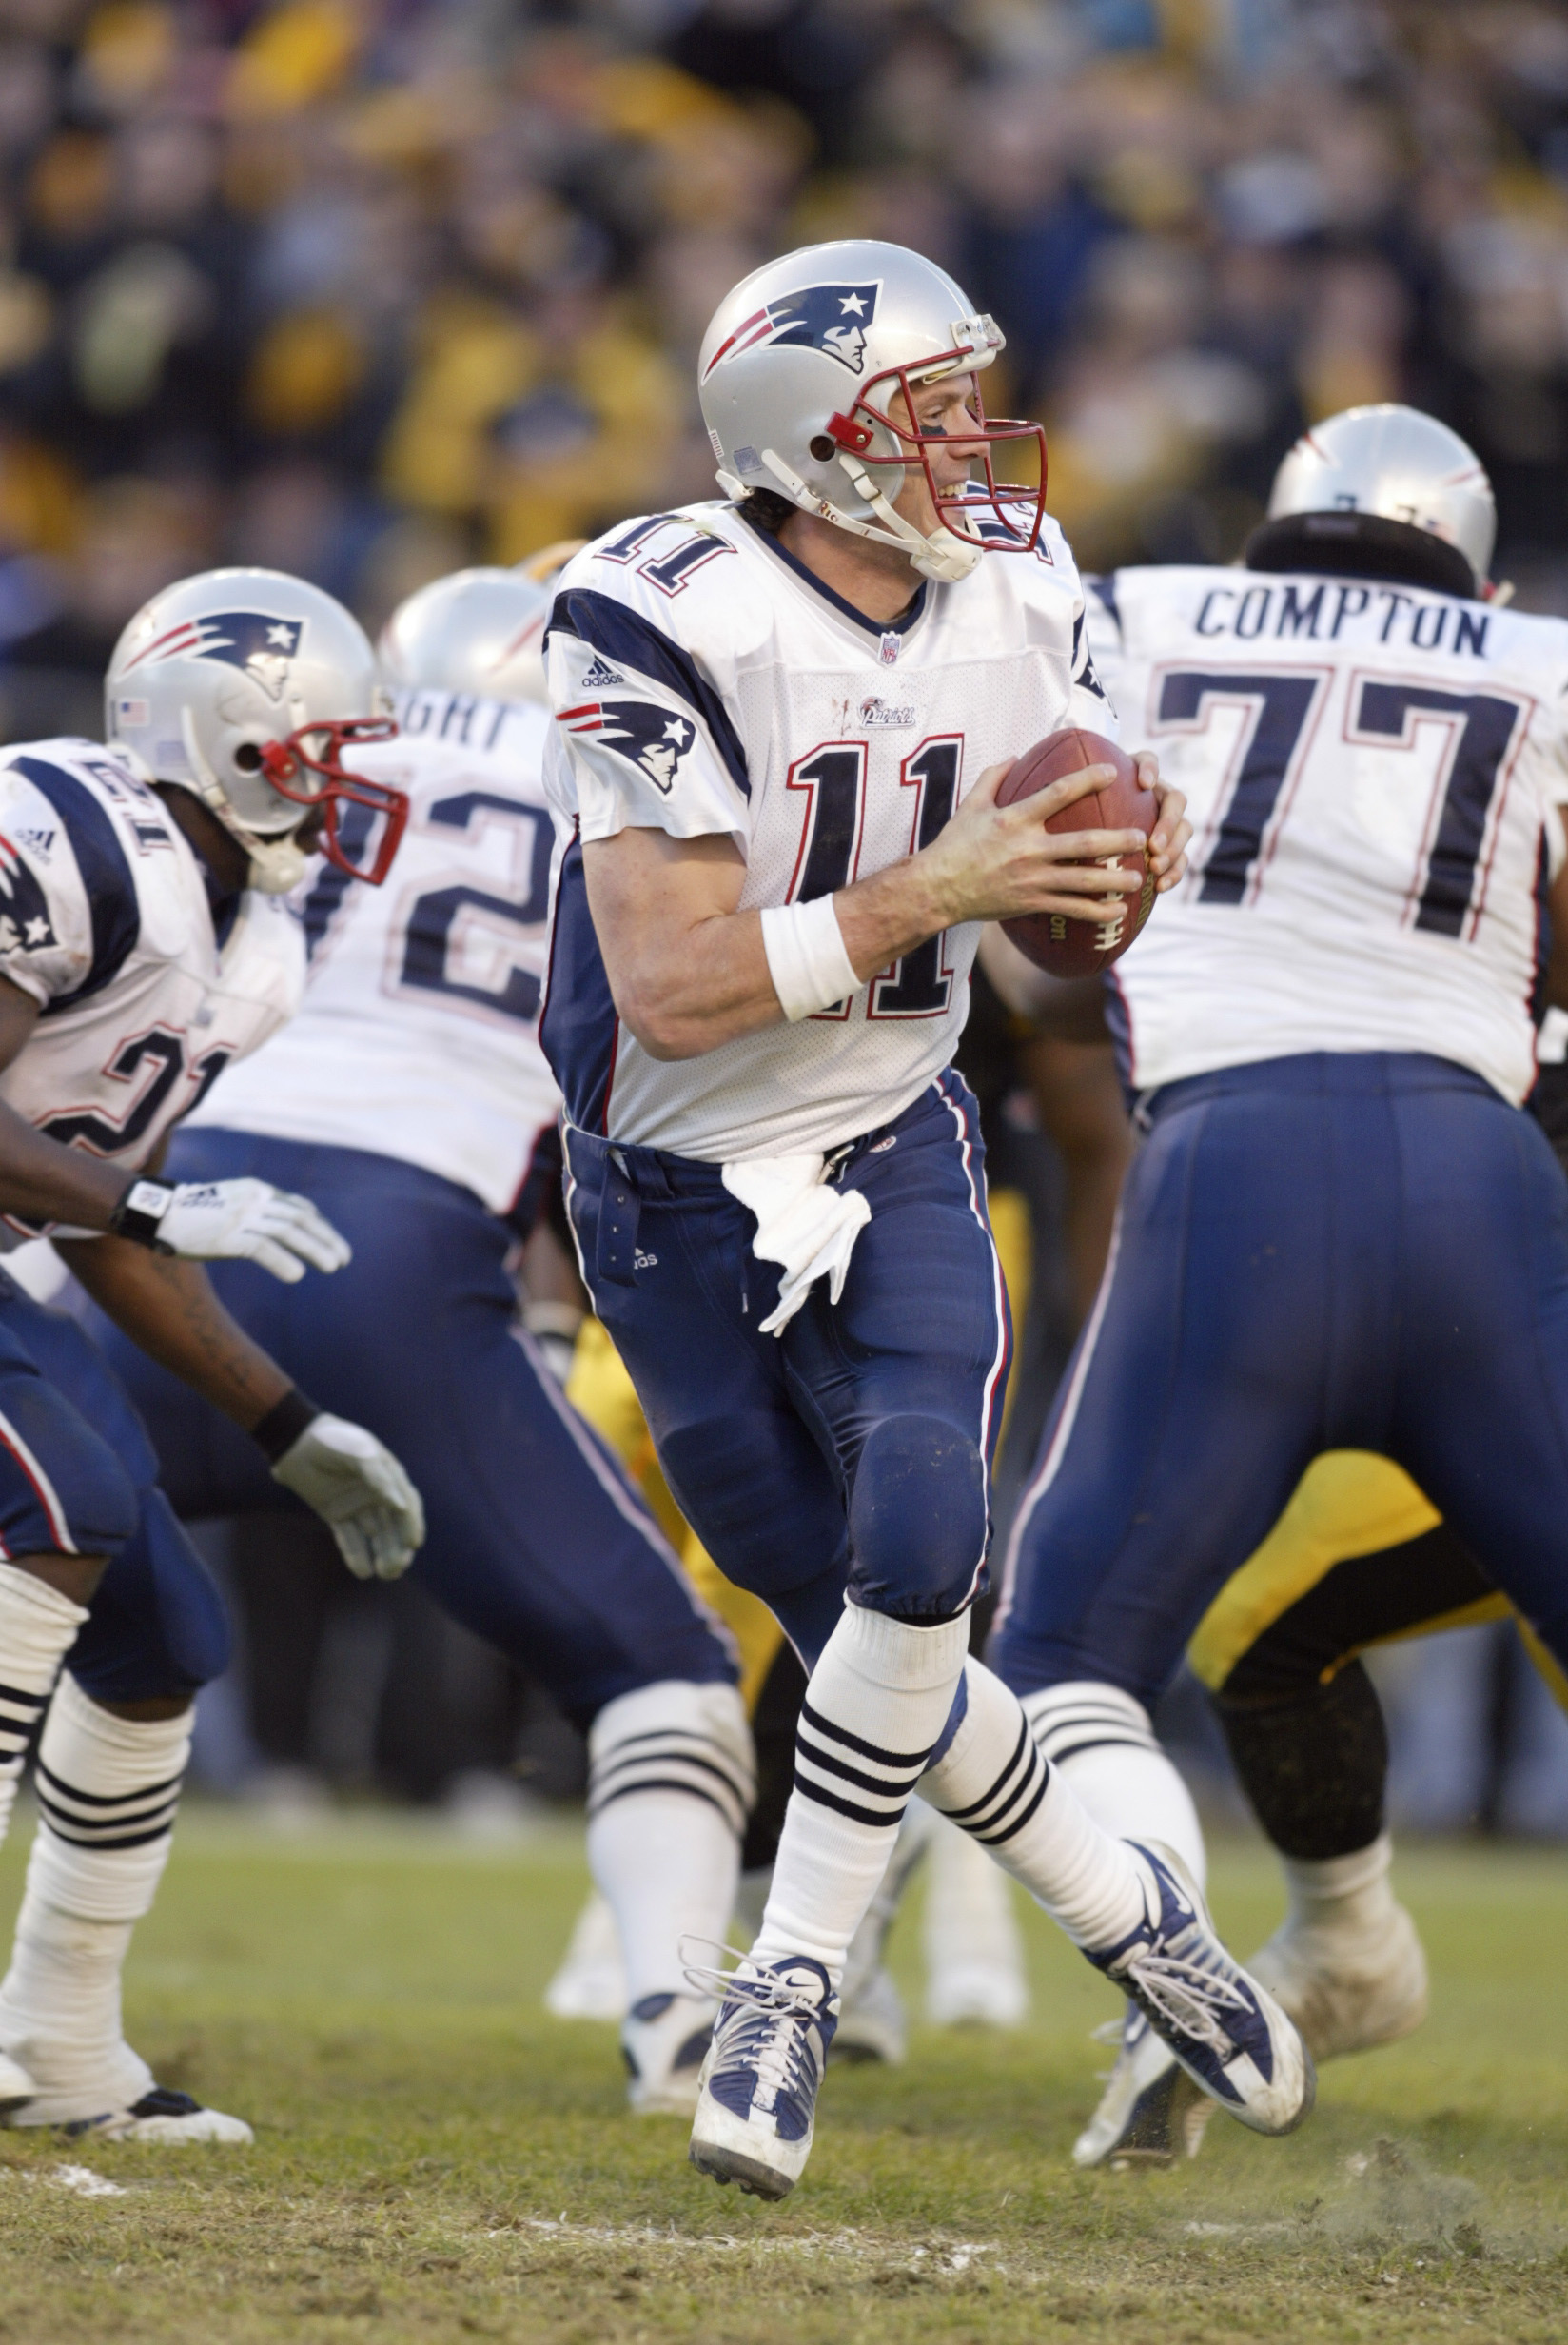 27 Jan 2002: Quarterback Drew Bledsoe of the New England Patriots looks to throw a pass during the AFC Championship Game against the Pittsburgh Steelers at Heinz Field in Pittsburgh, Pennsylvania. The Patriots won 24-17. DIGITAL IMAGE. Mandatory Credit: A